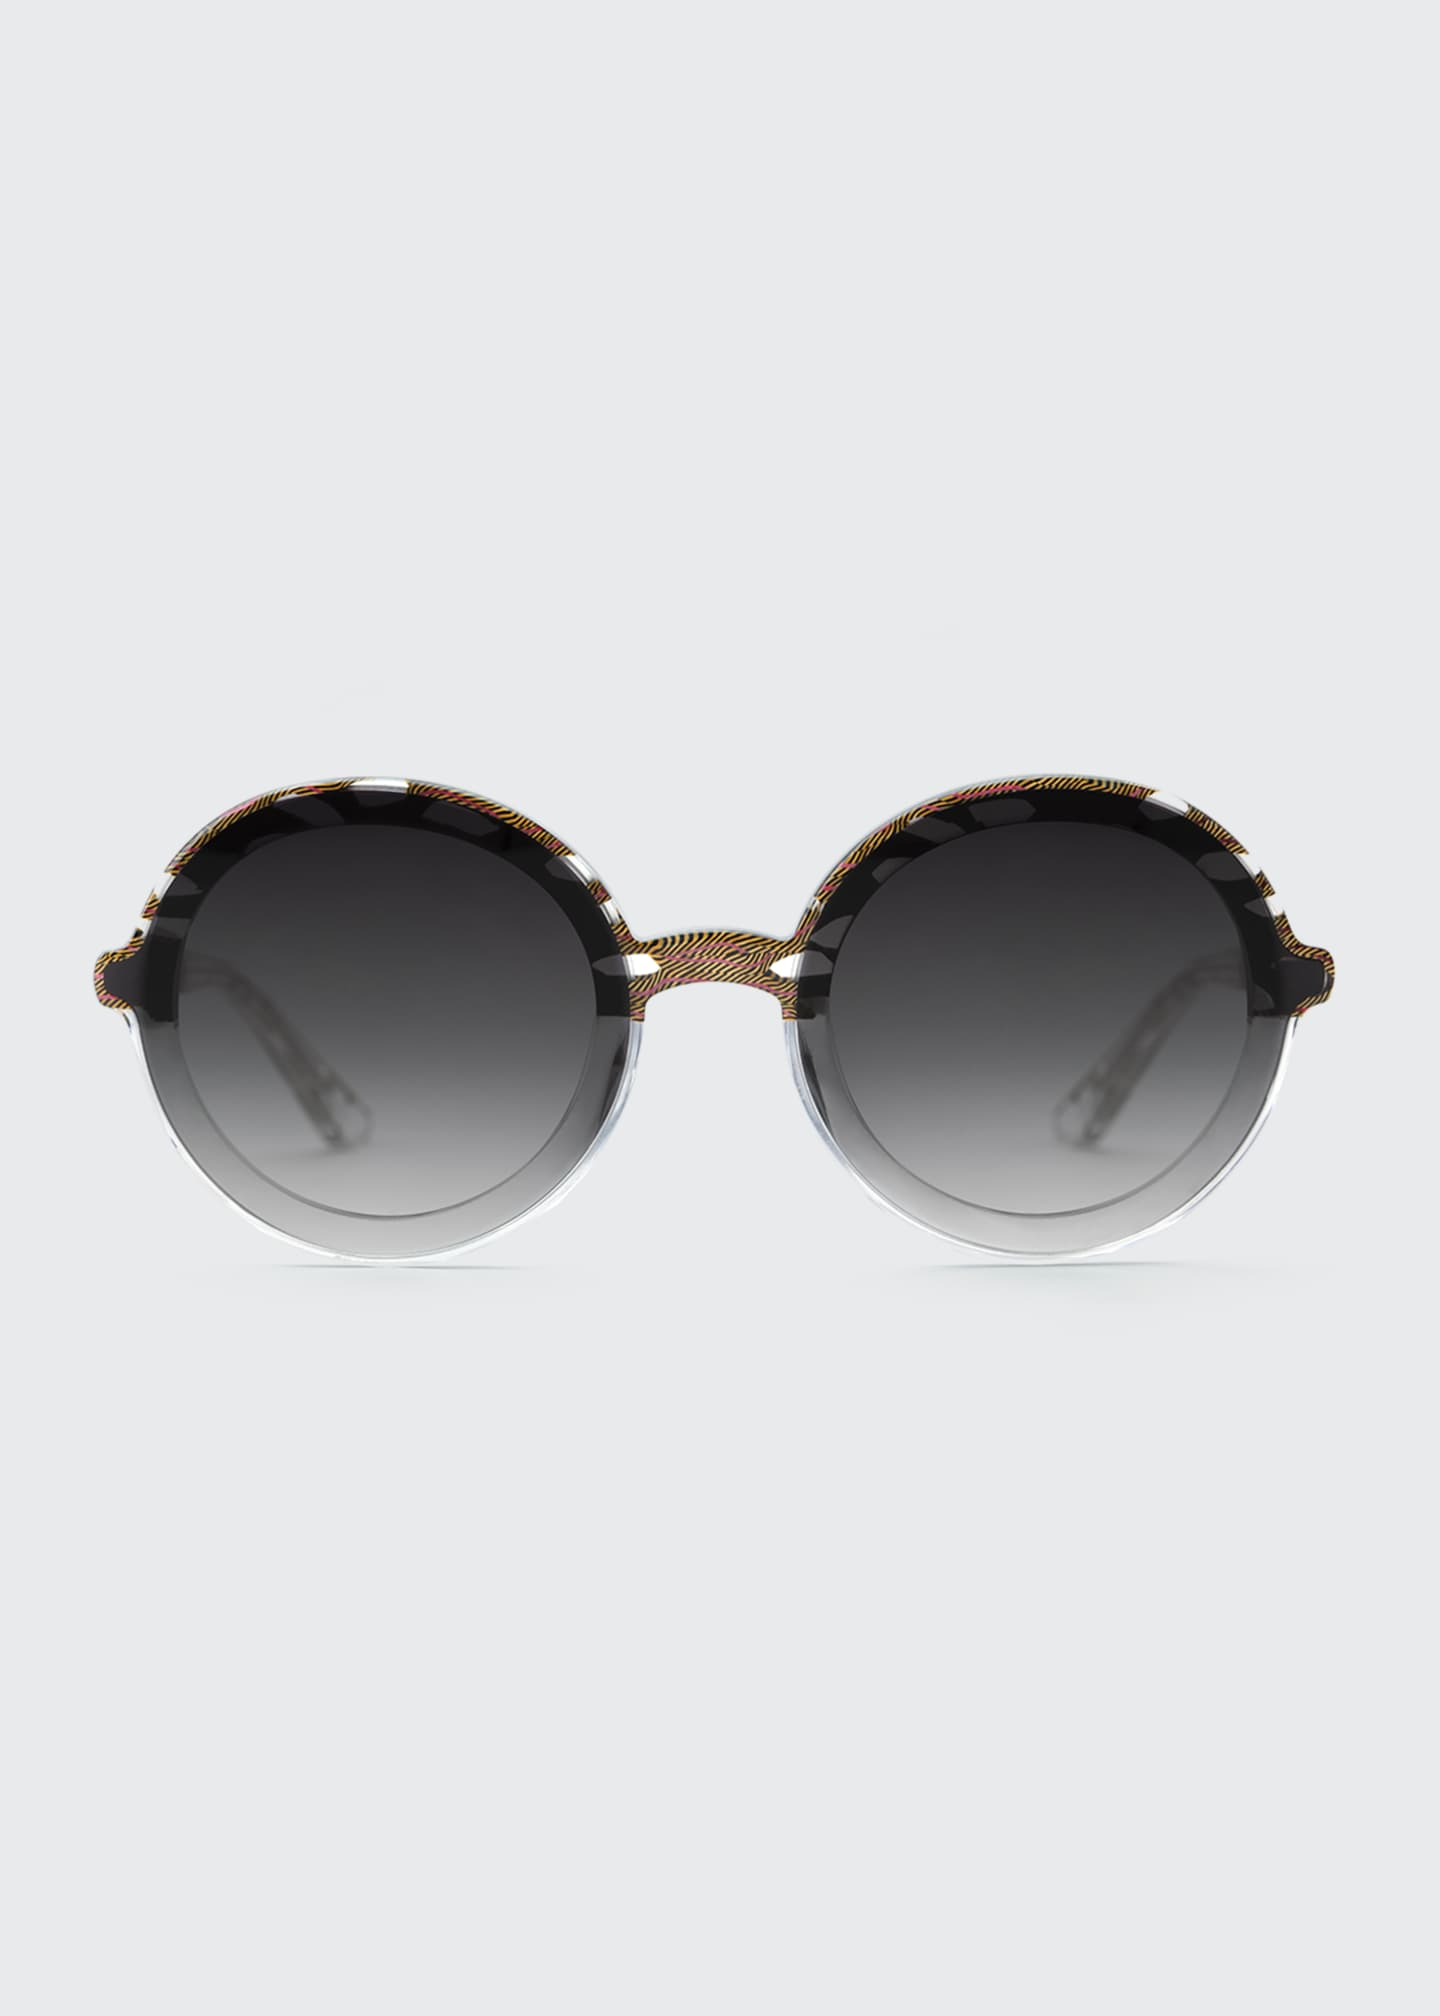 Image 2 of 2: Louisa Nylon Round Sunglasses